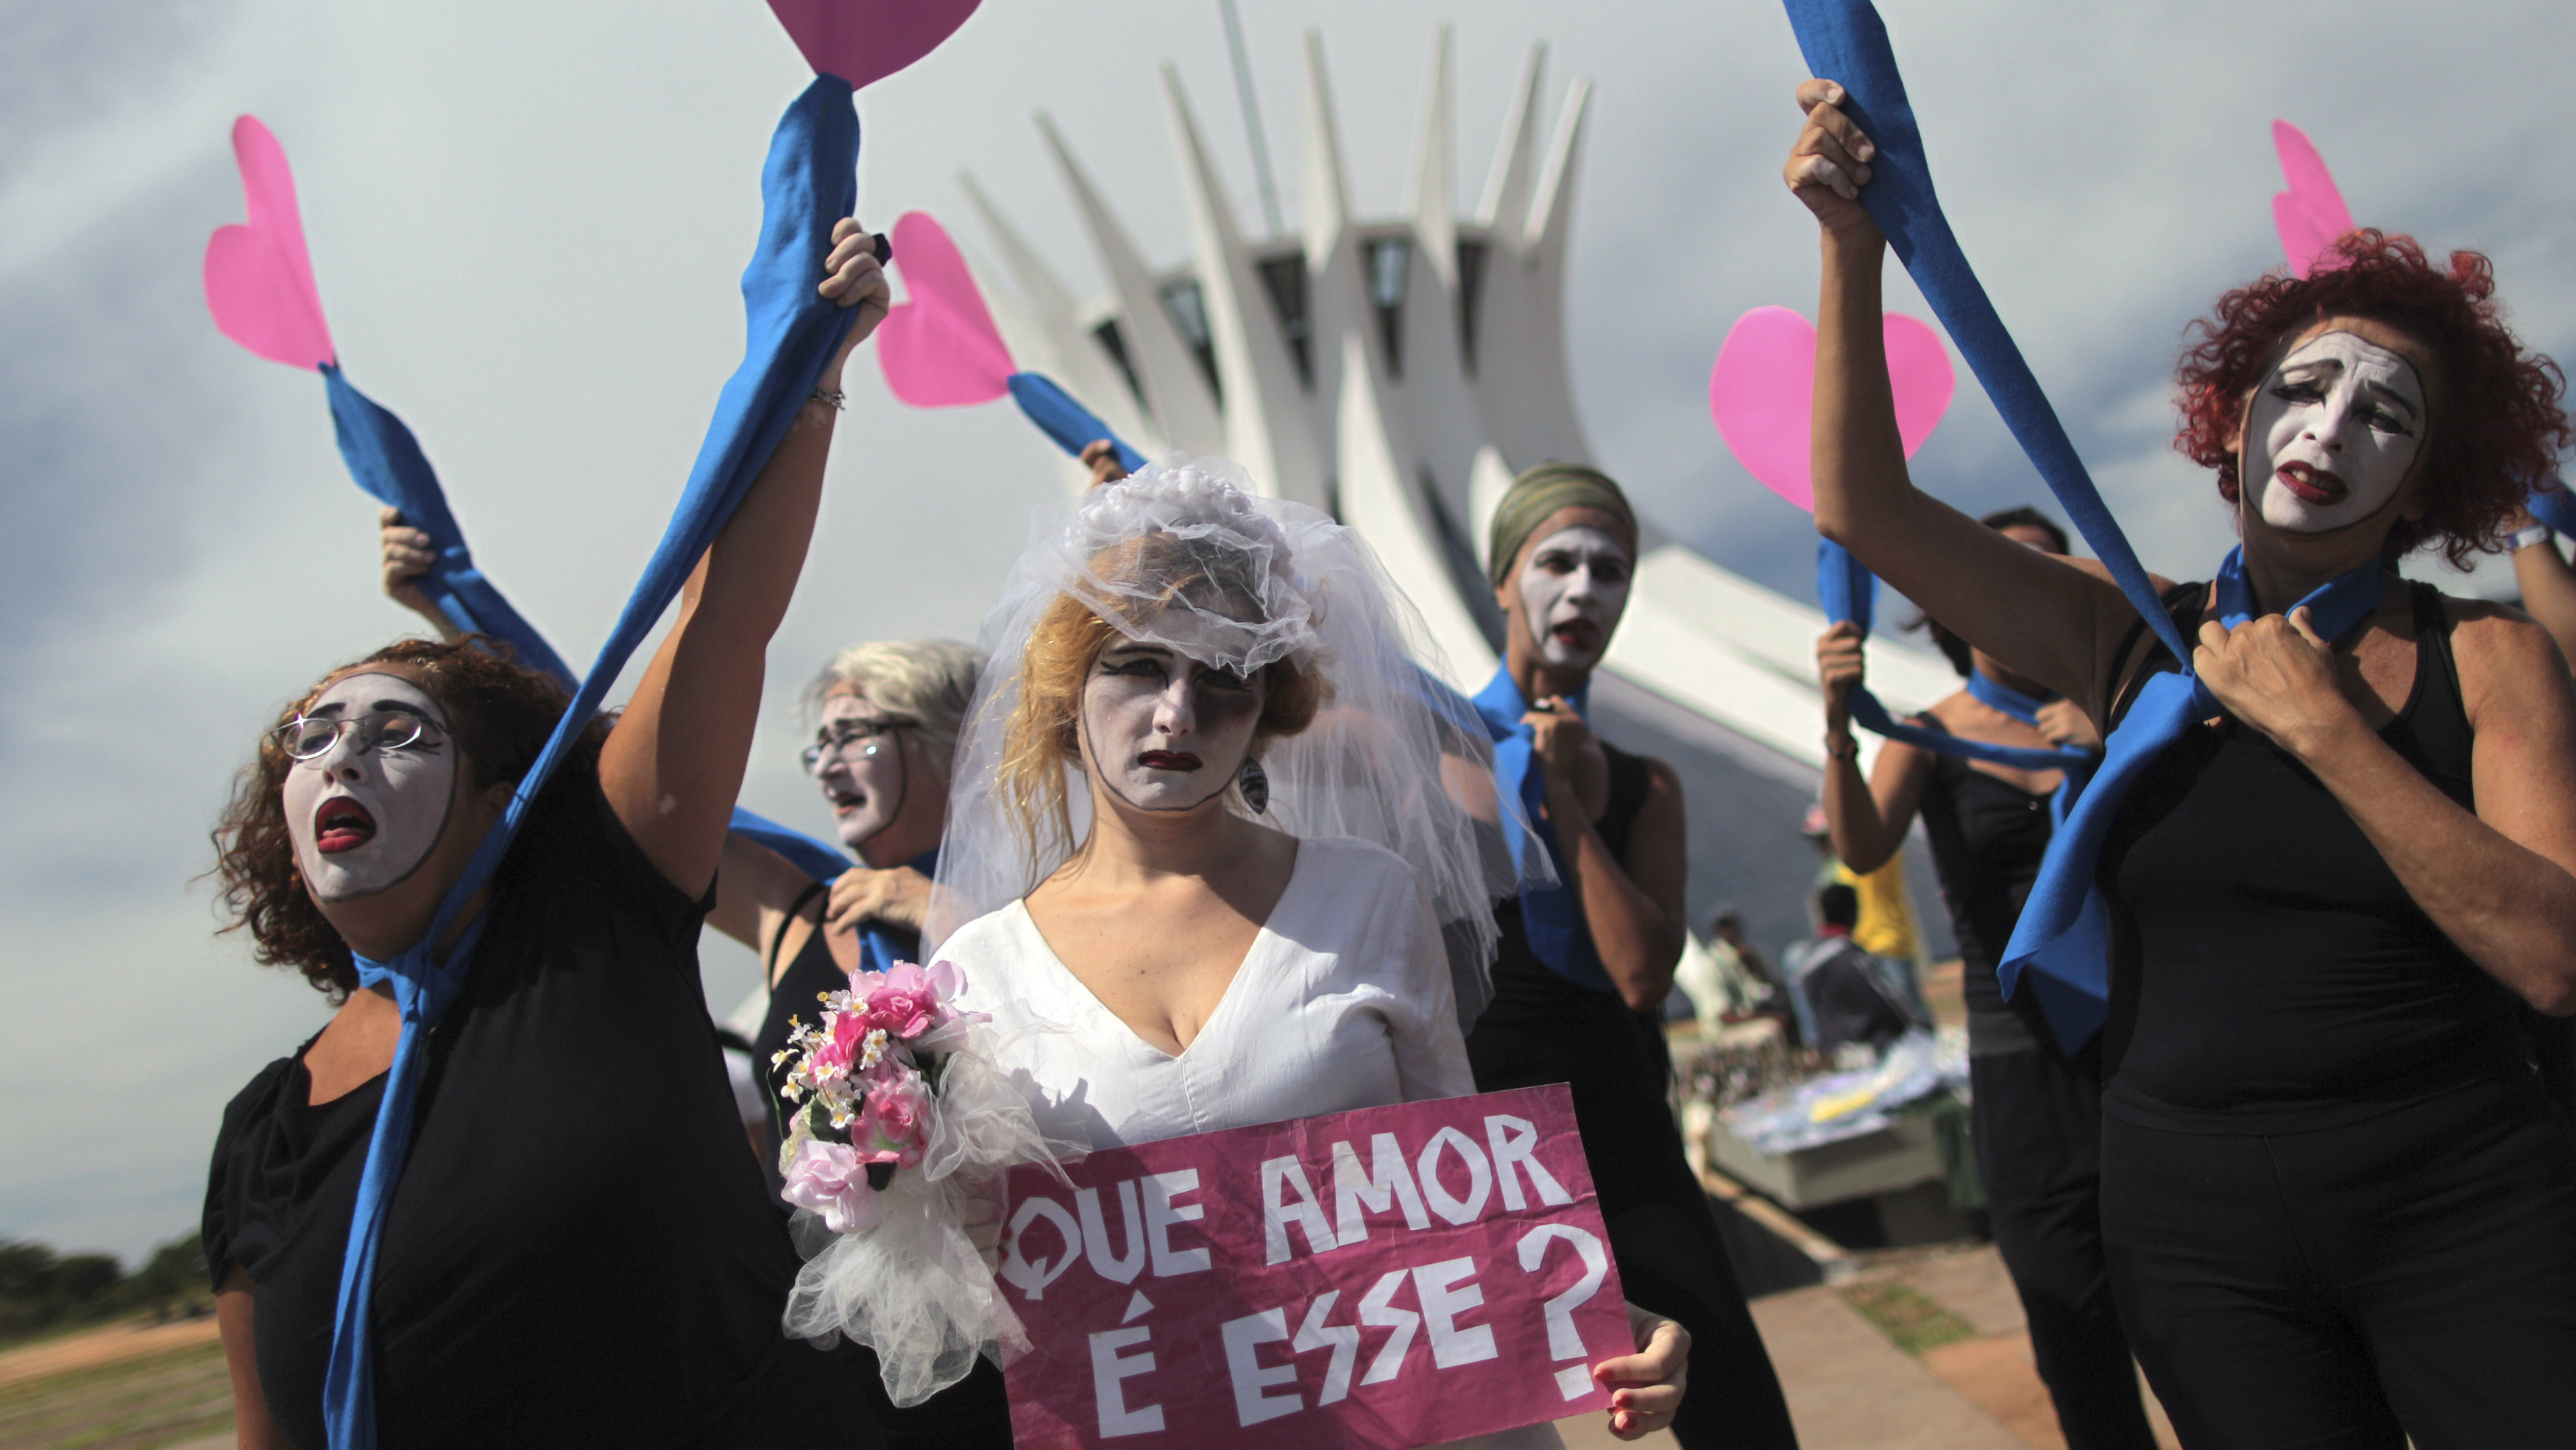 "Women hold up heart-shaped pieces of paper as they protest about violence against women, at the close of the National Meeting of Rural Women, in Brasilia February 21, 2013. The sign reads, ""What love is this?"" REUTERS/Ueslei Marcelino (BRAZIL - Tags: POLITICS CIVIL UNREST TPX IMAGES OF THE DAY)"